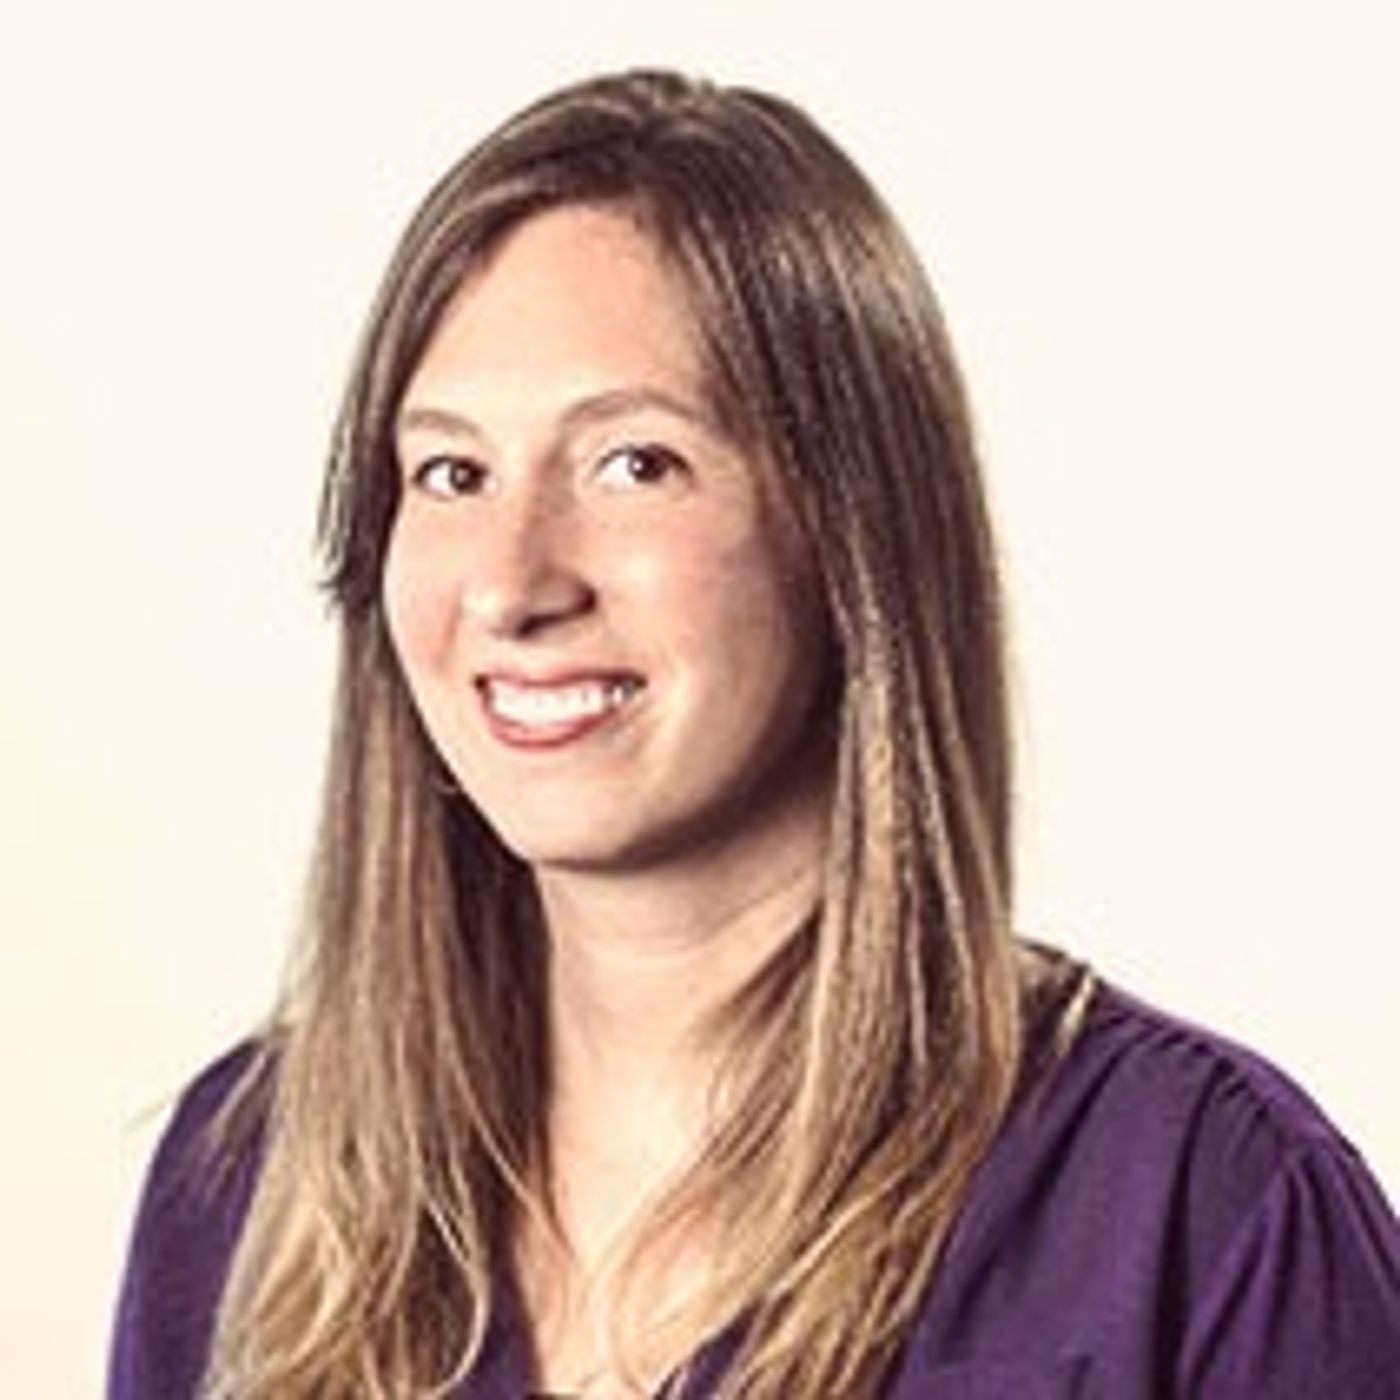 Managing remotely with Asana Engineering Manager Kate Reading